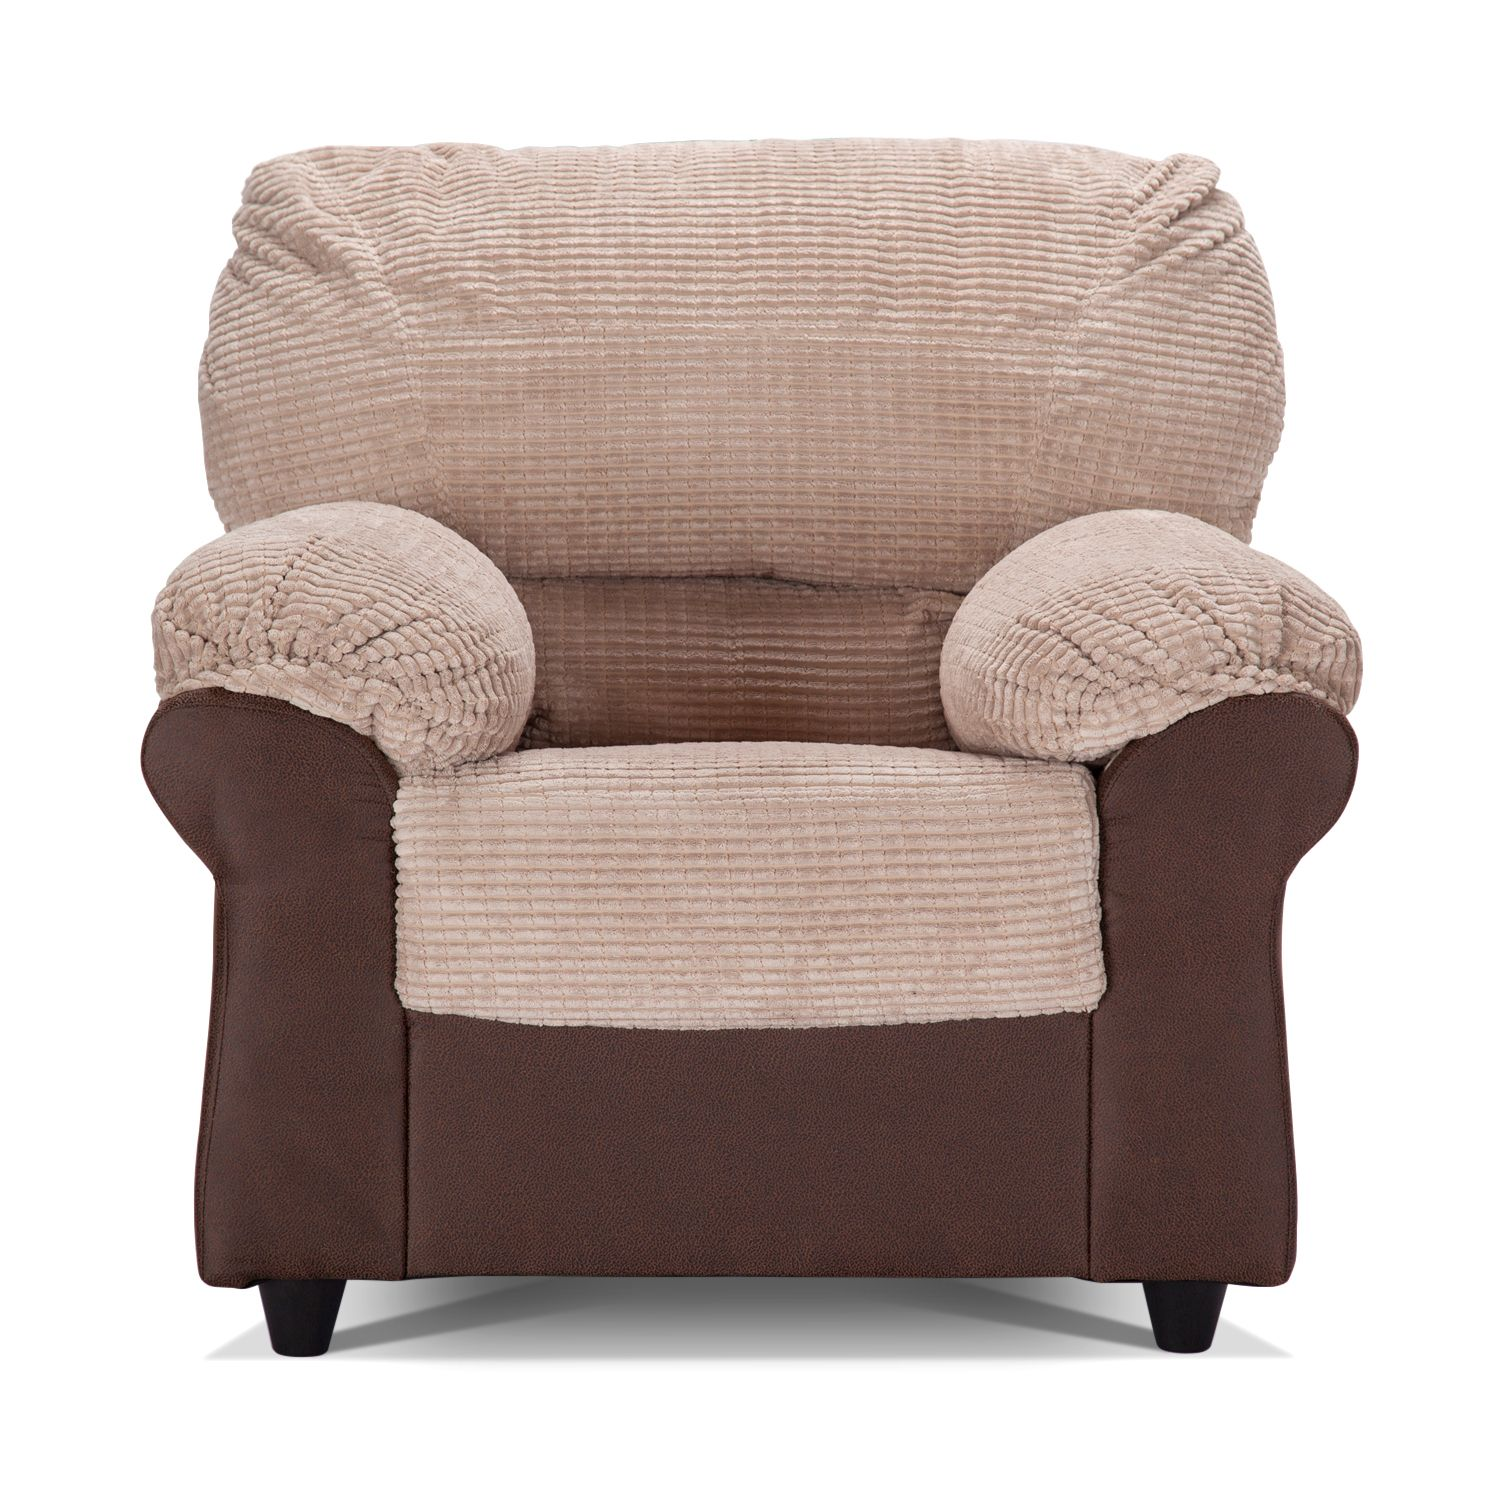 uk armchairs | armchairs cheap | armchairs uk | armchairs ...